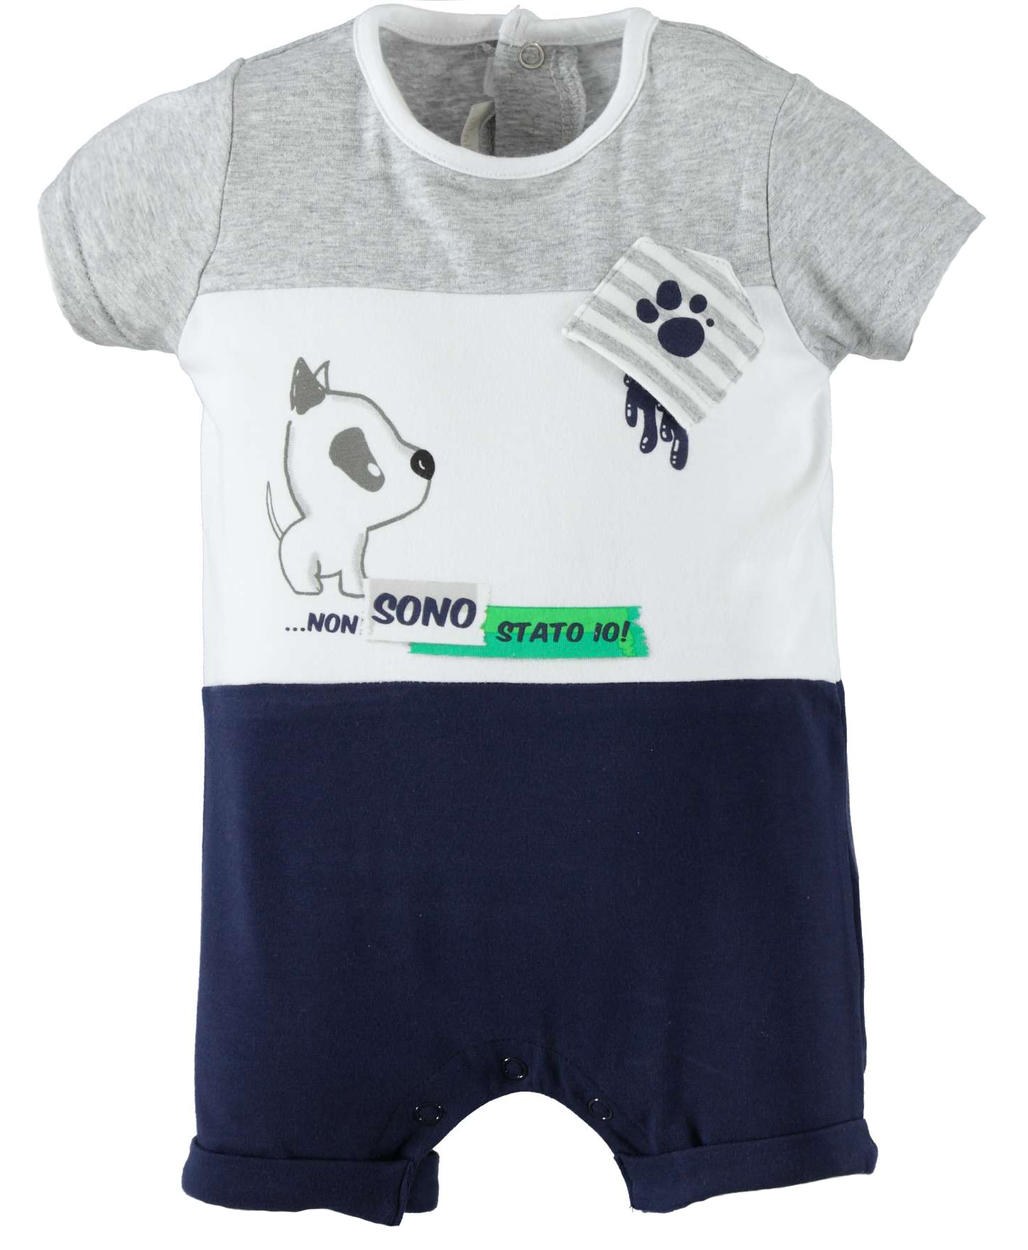 9cc6c730ddfd Summer baby boy romper suit in stretch cotton for newborn from 0 to ...